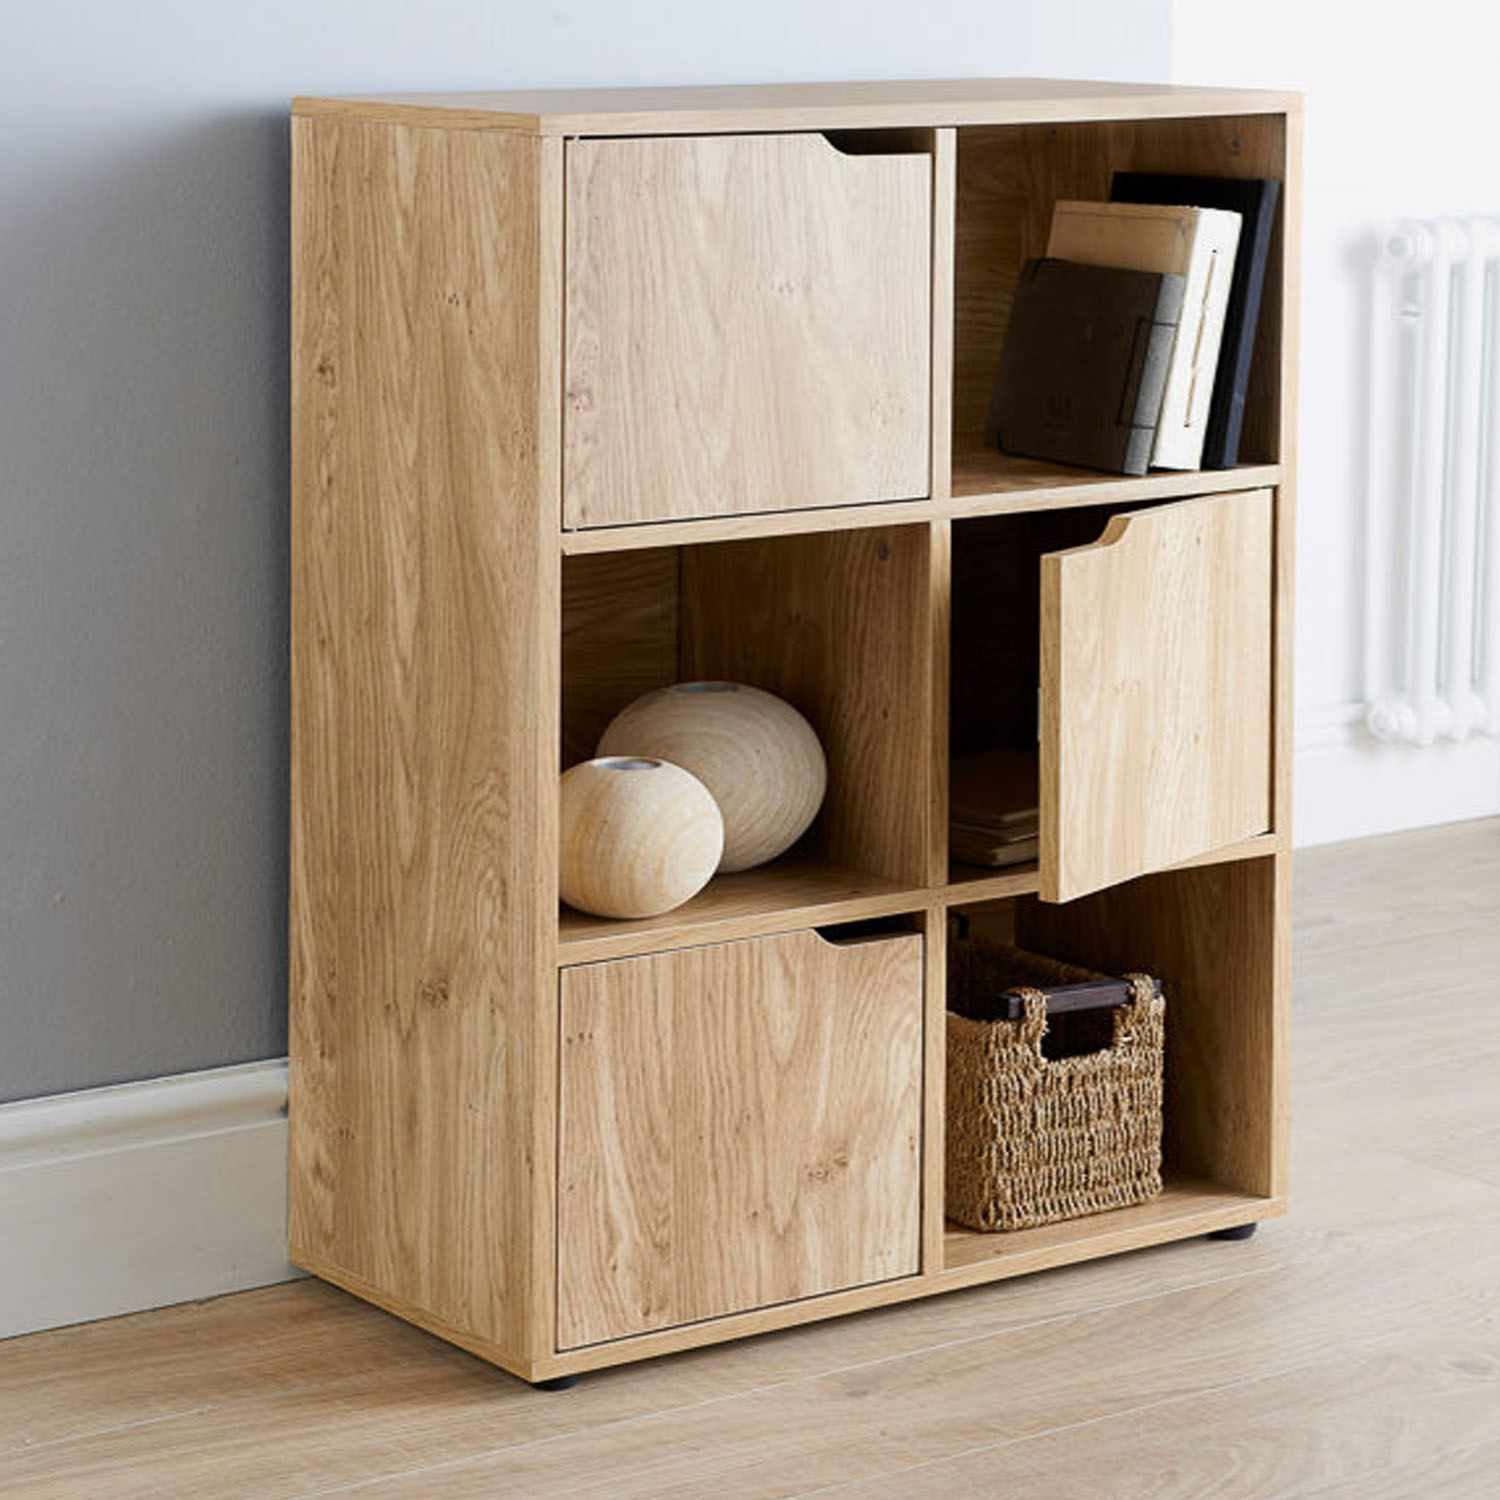 4 6 9 Wooden Cube Storage Unit Display Shelves Cupboard